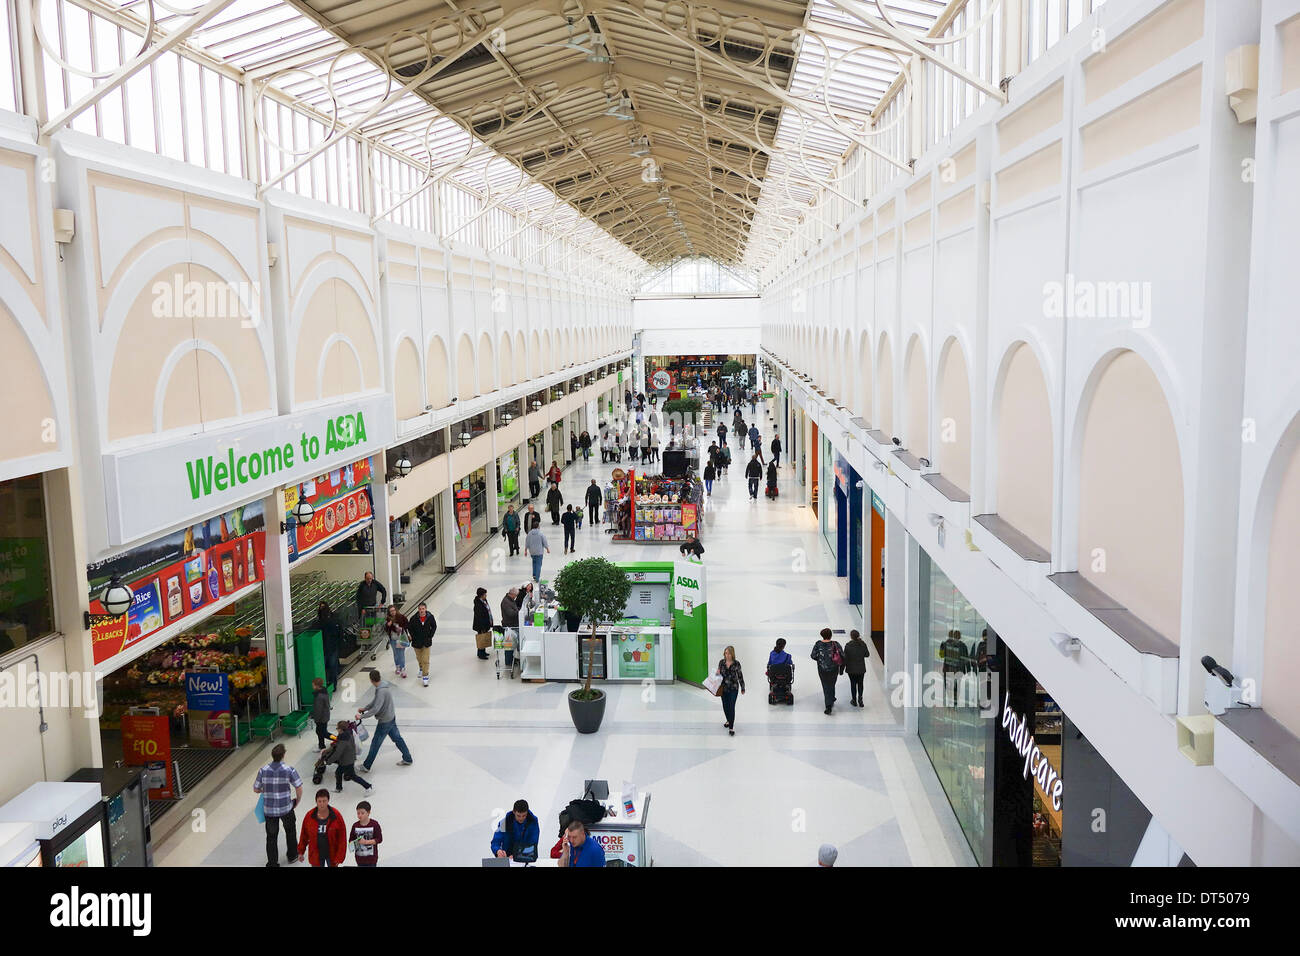 merry hill online dating A section of merry hill shopping centre in brierley hill was evacuated this morning shops around the paperchase store were evacuated around 1145am after employees found an unattended paper bag .